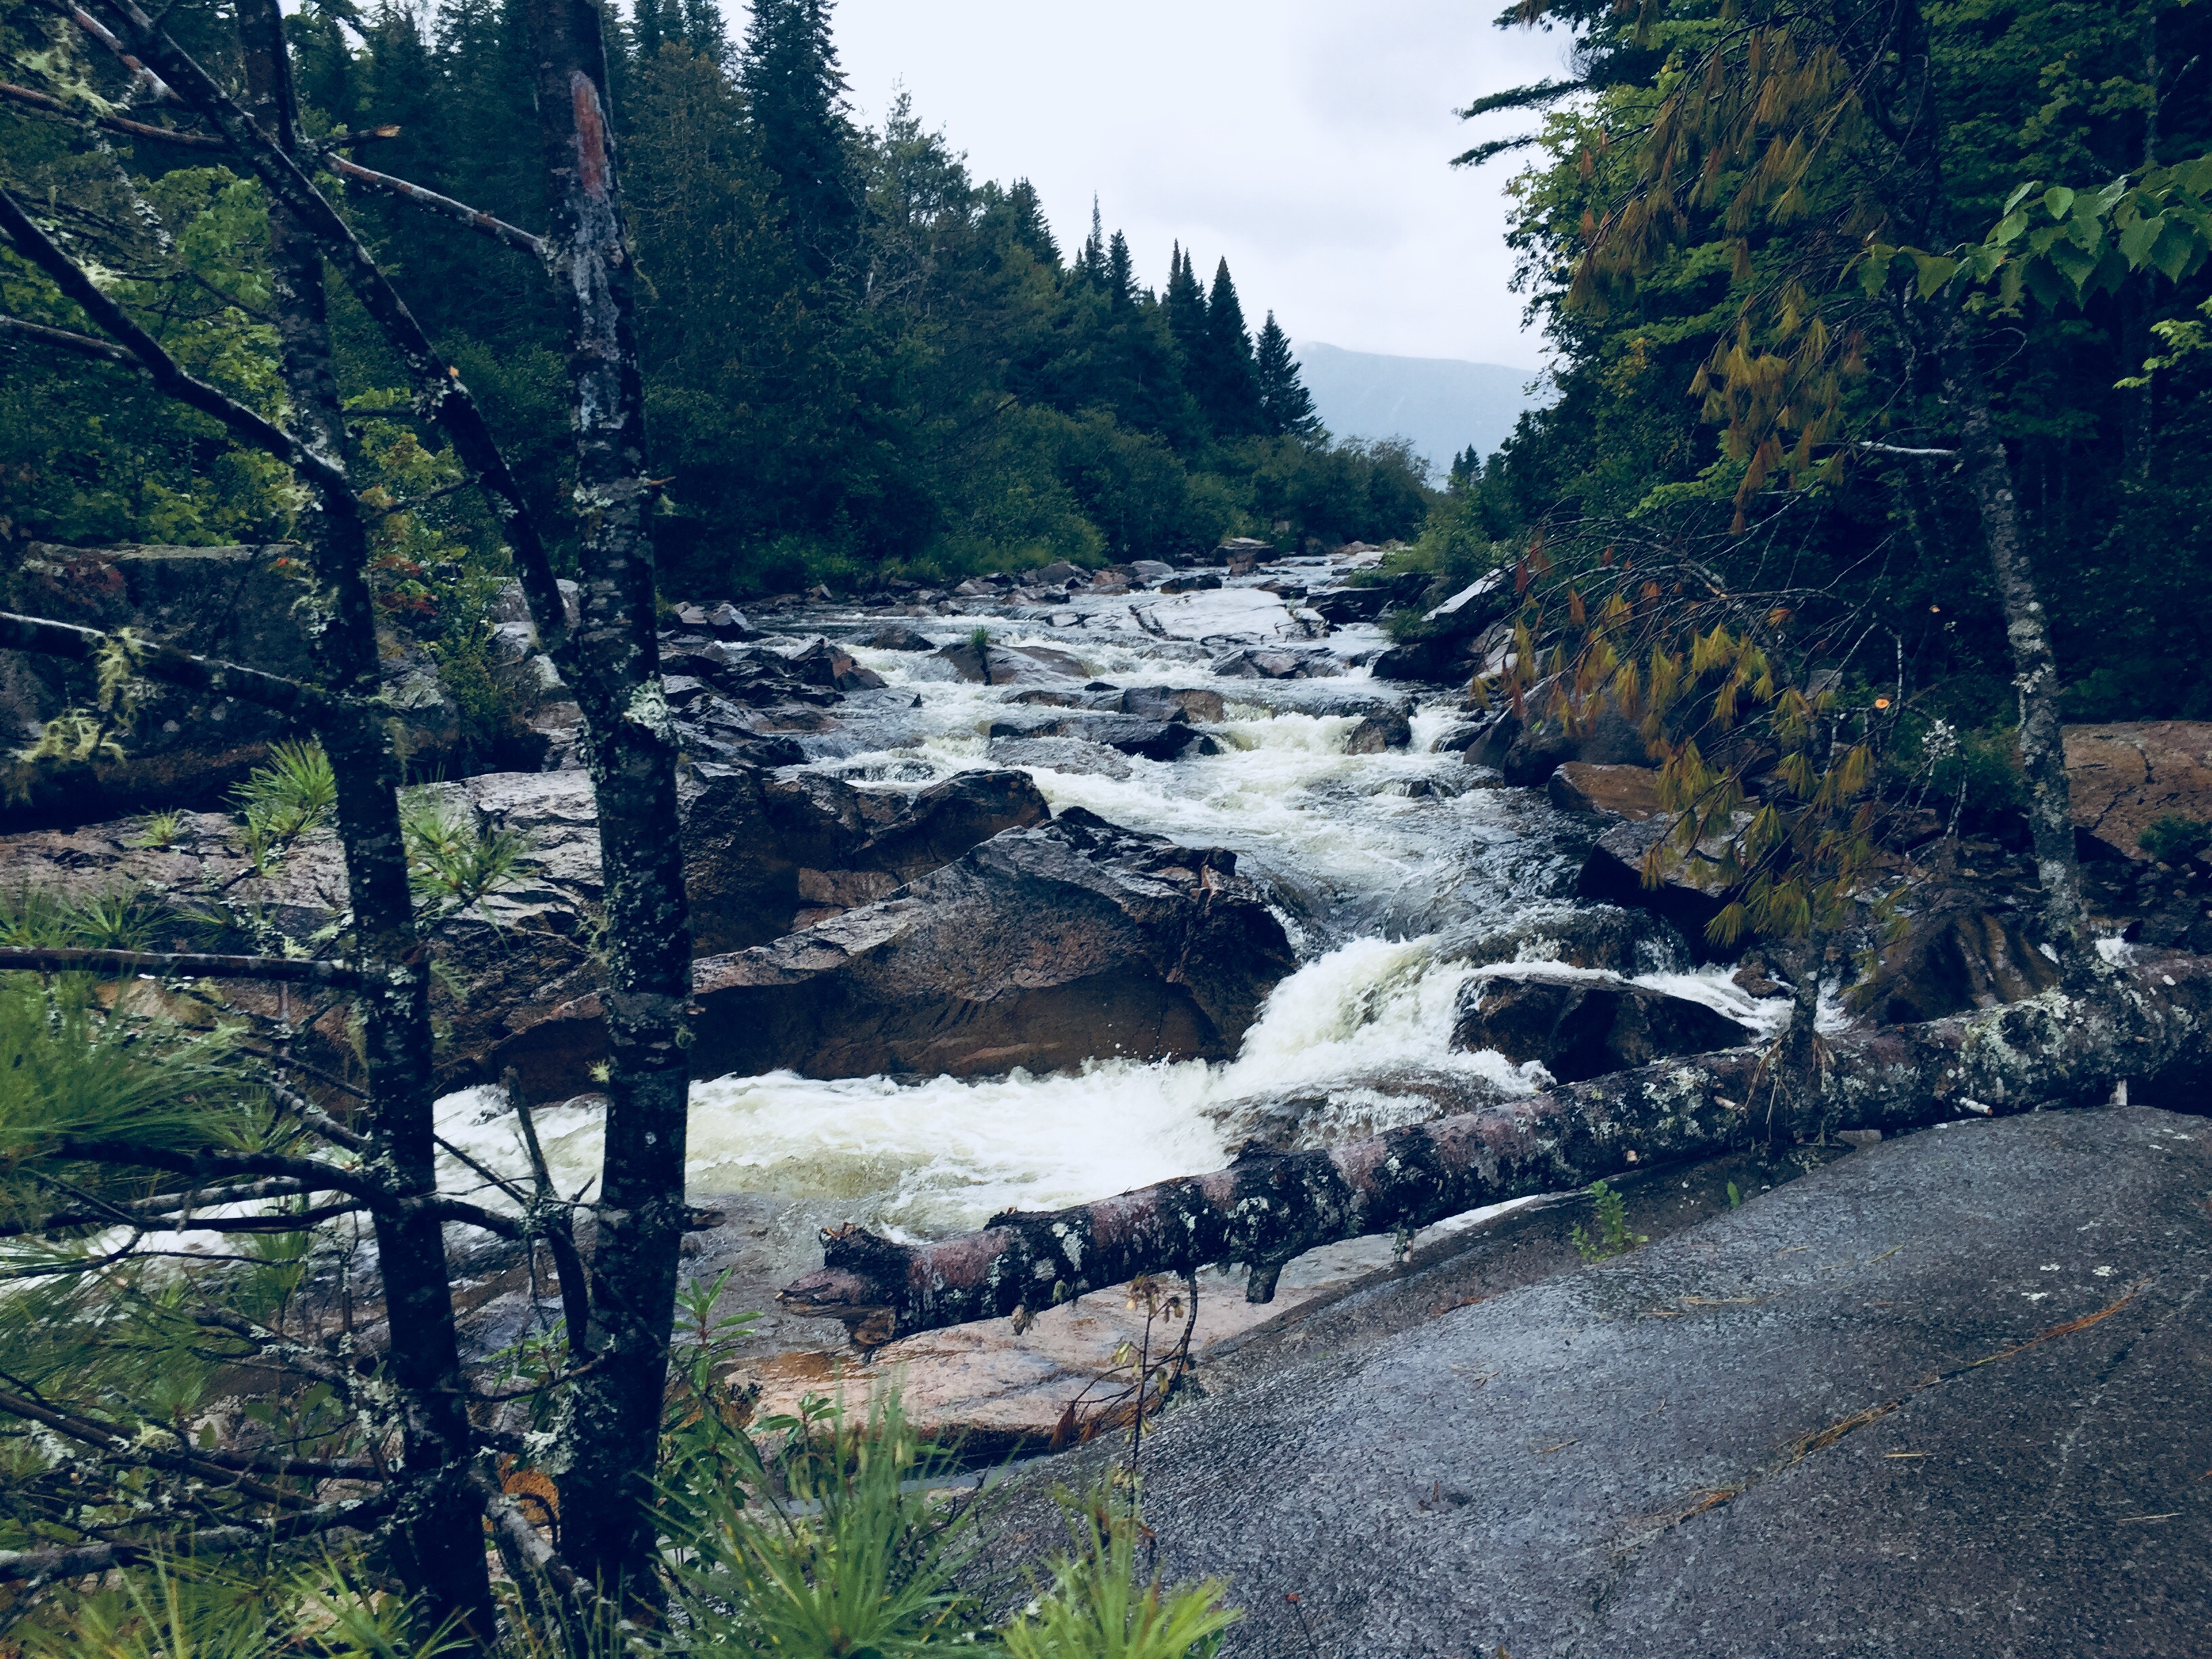 Little Niagara Falls, Appalachian Trail in Baxter State Park